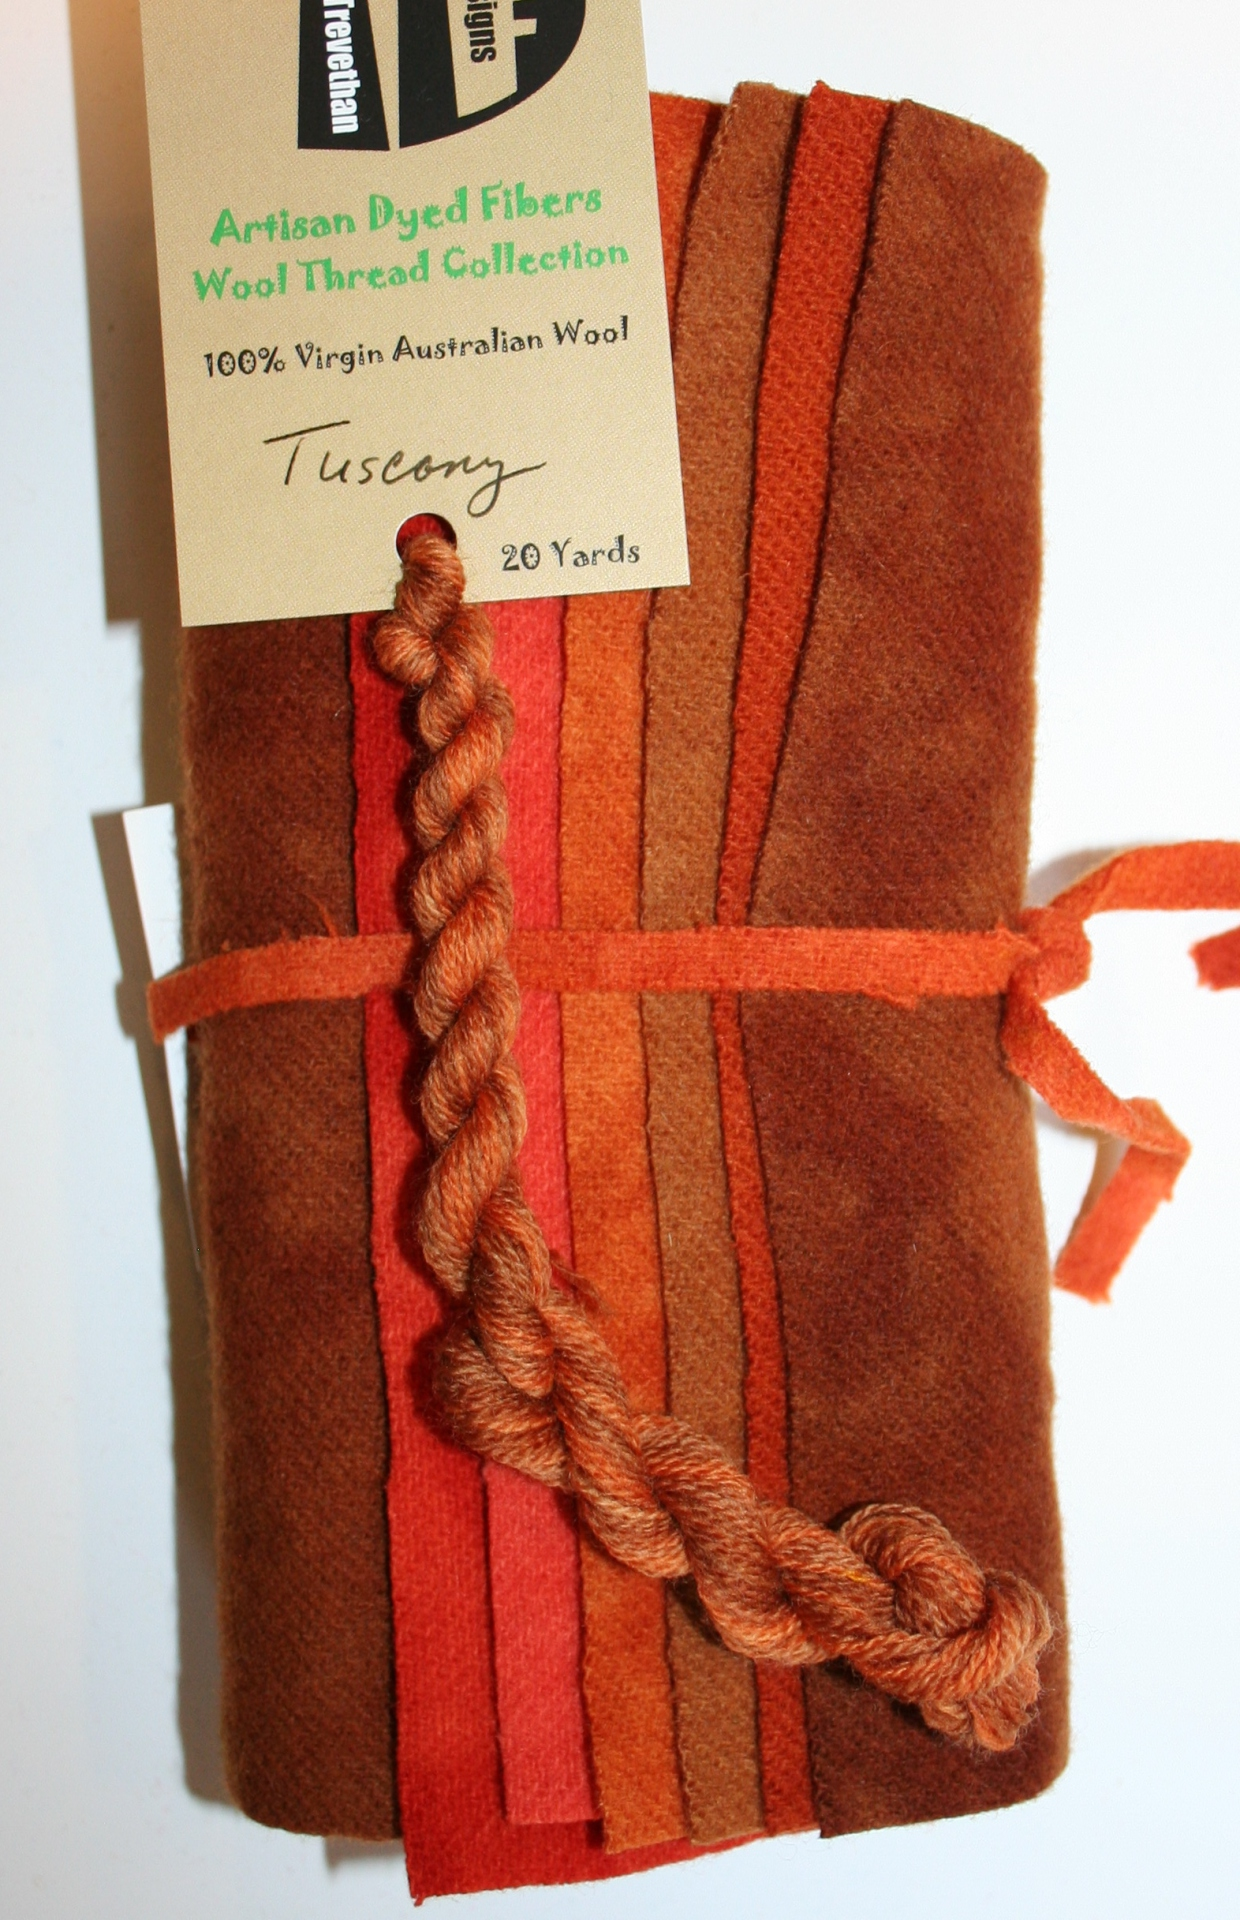 Tuscany Hand Dyed Wool Six Pack Collection